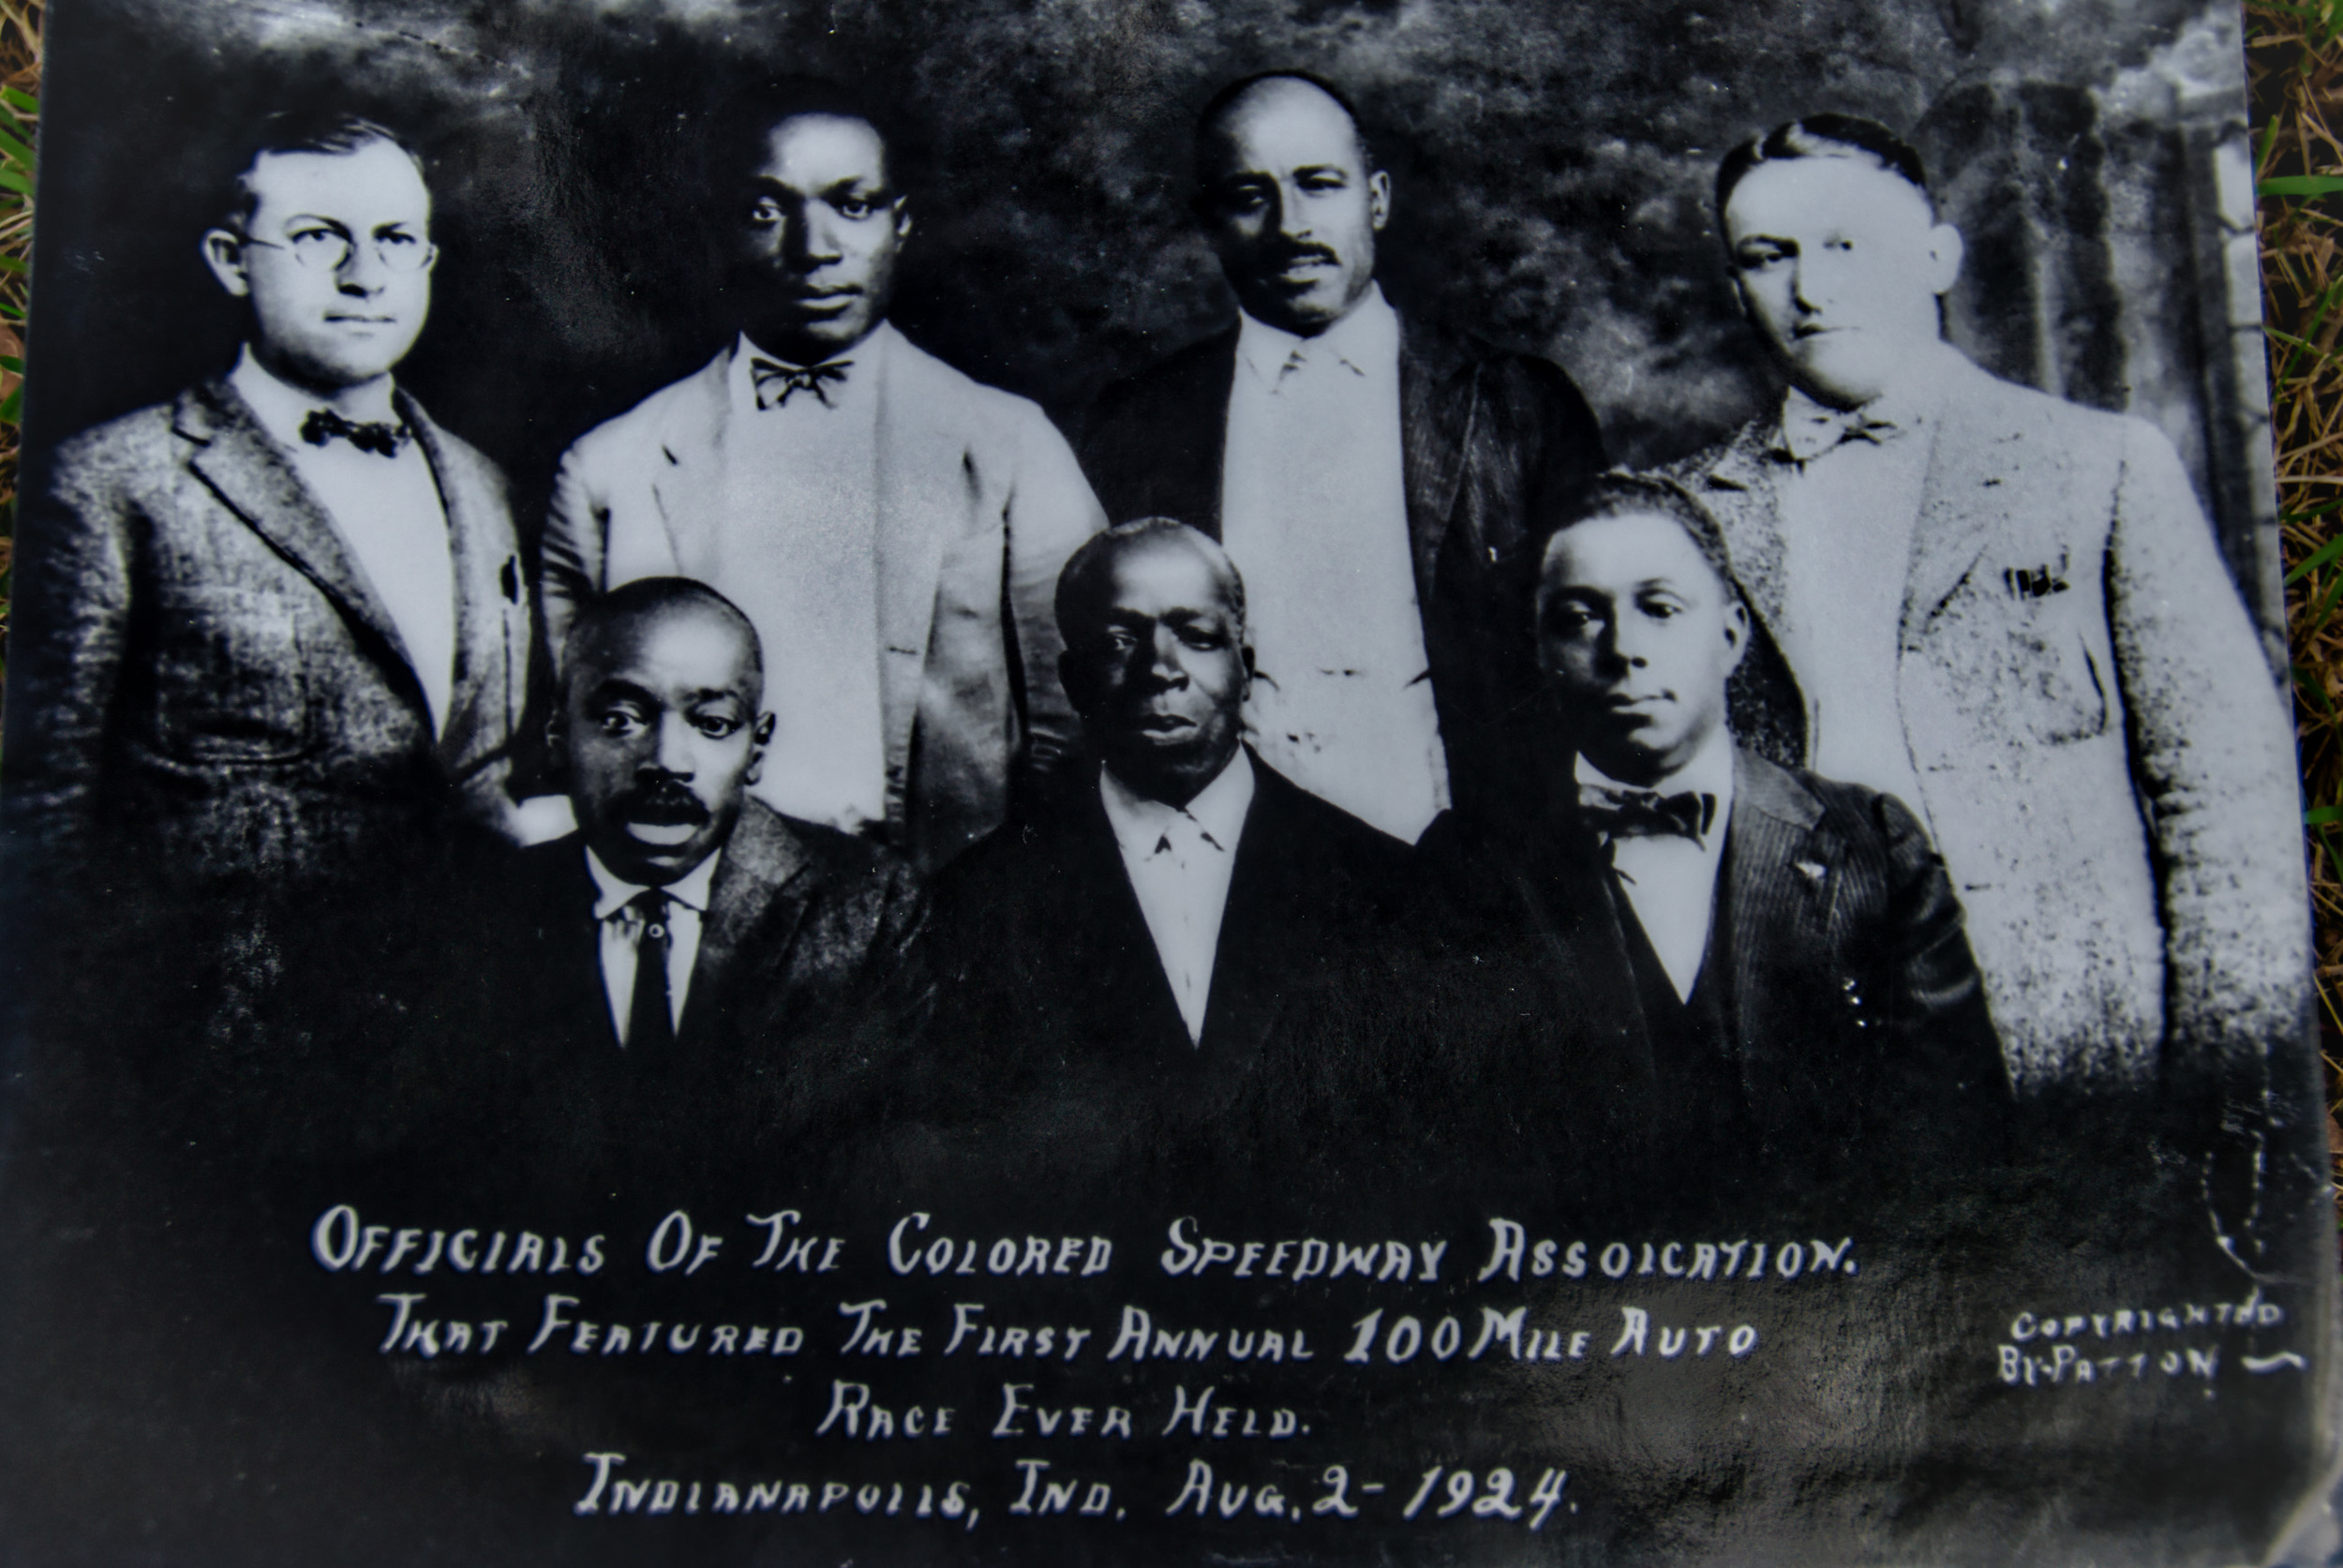 Officials of the Colored Speedway Association